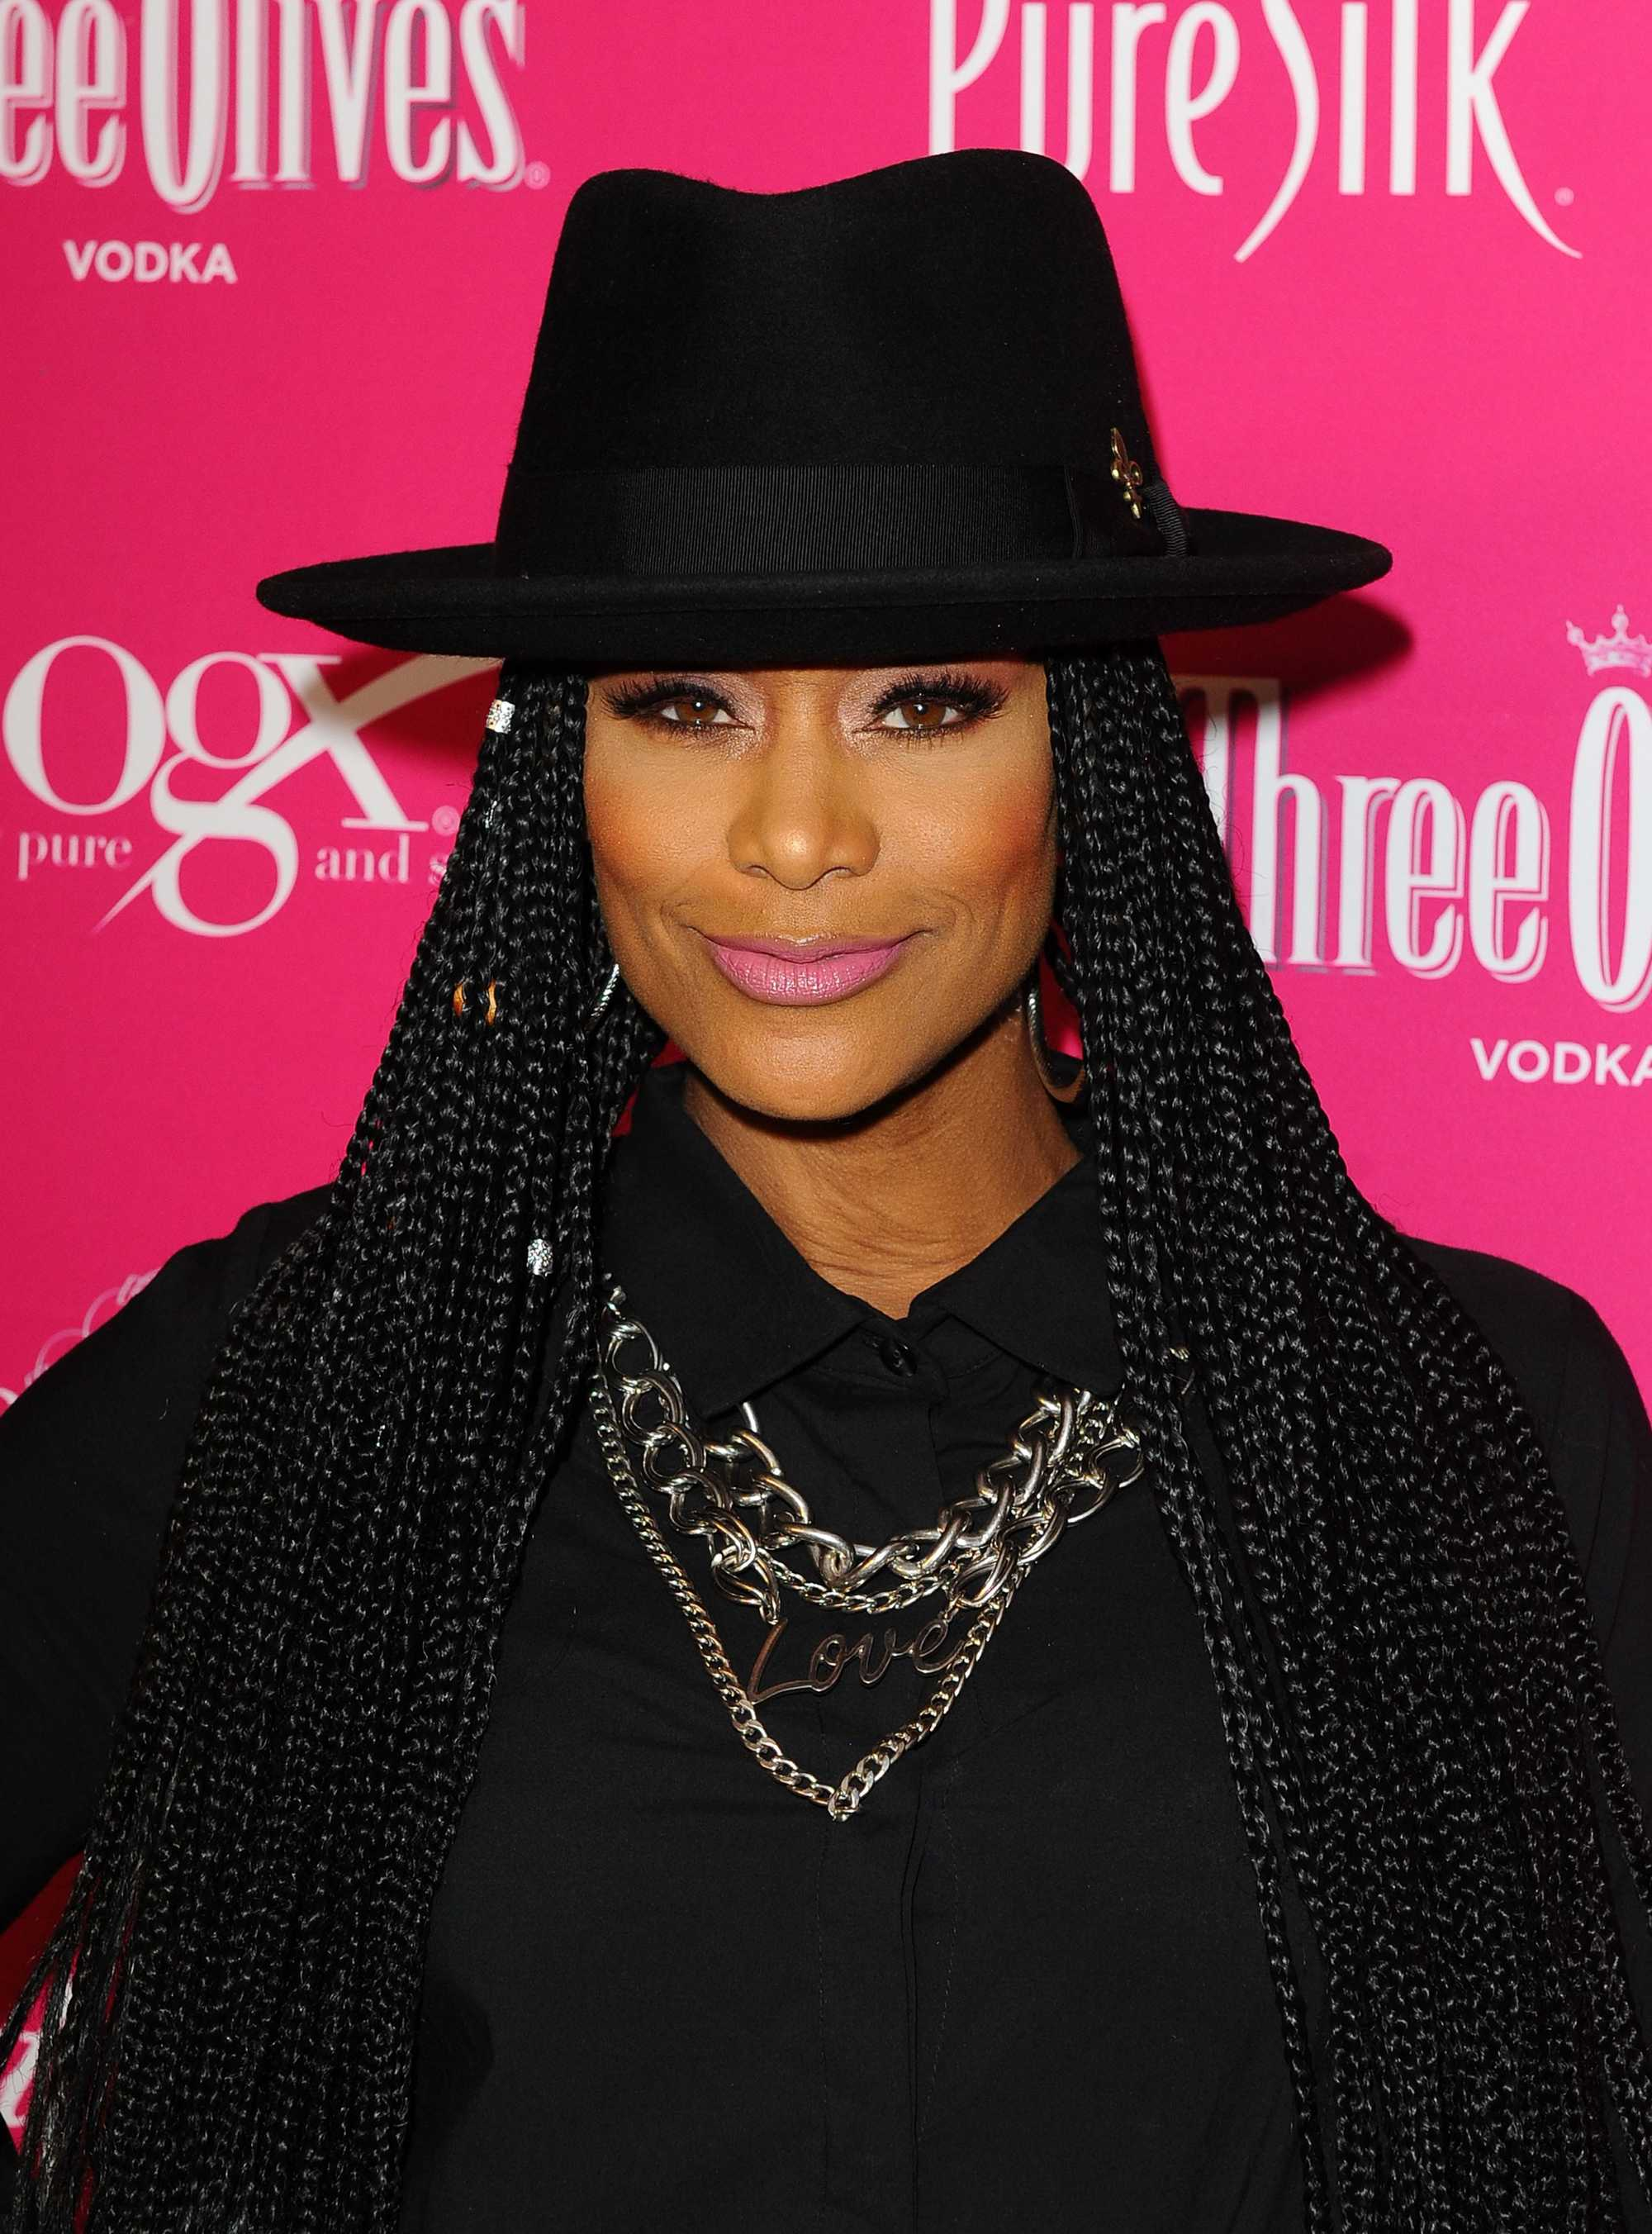 tami roman rocking poetic braids with black hat and hair cuffs